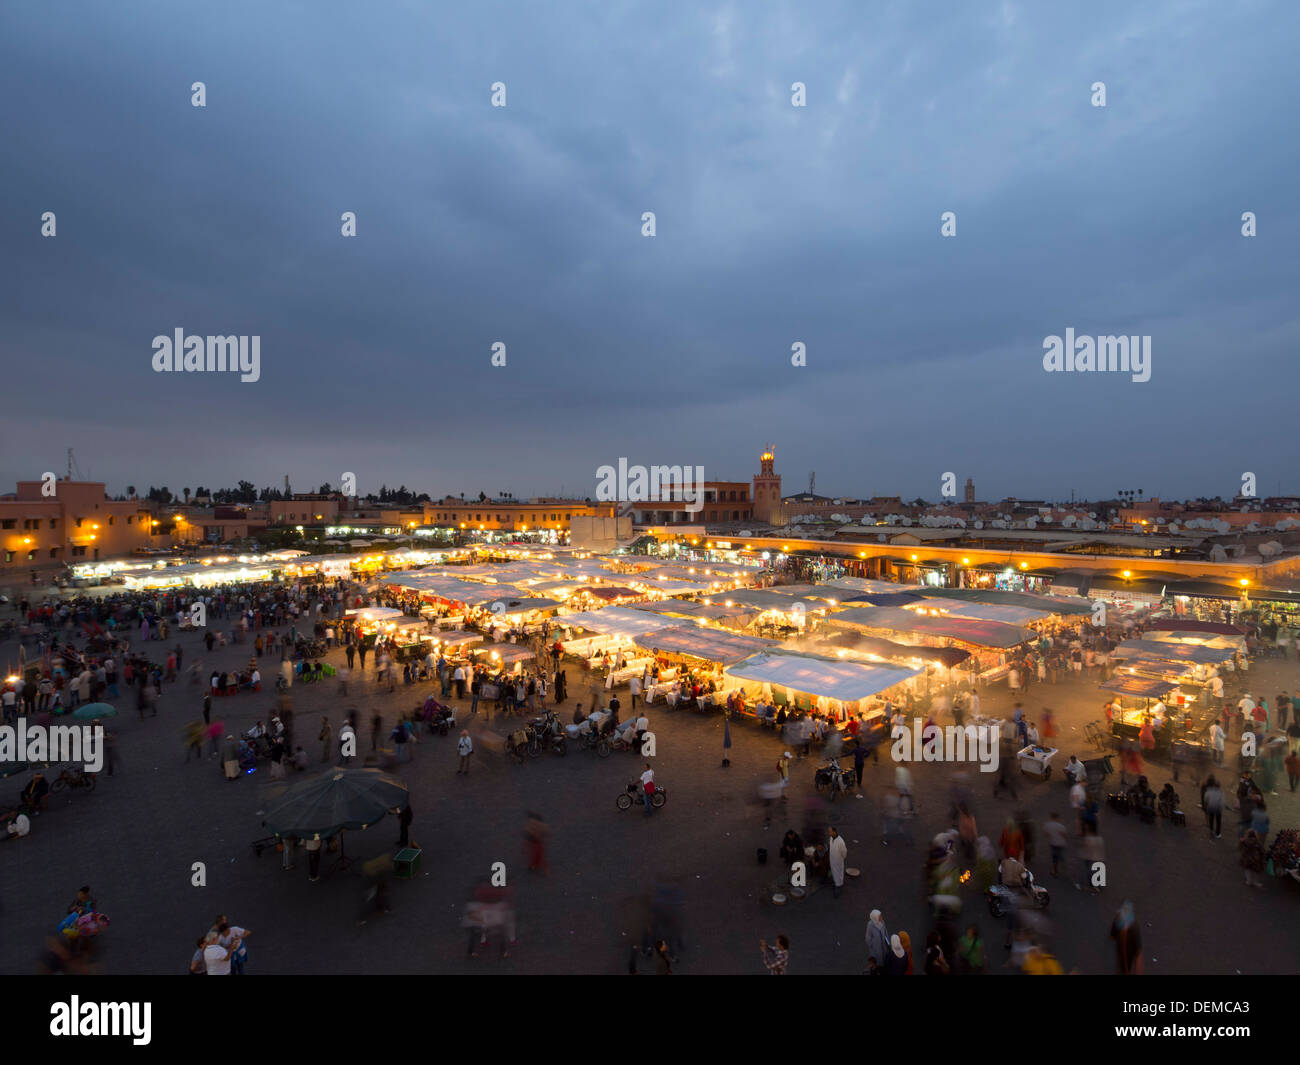 Food courts at Djemma el Fna square, Marrakech, Morocco Stock Photo